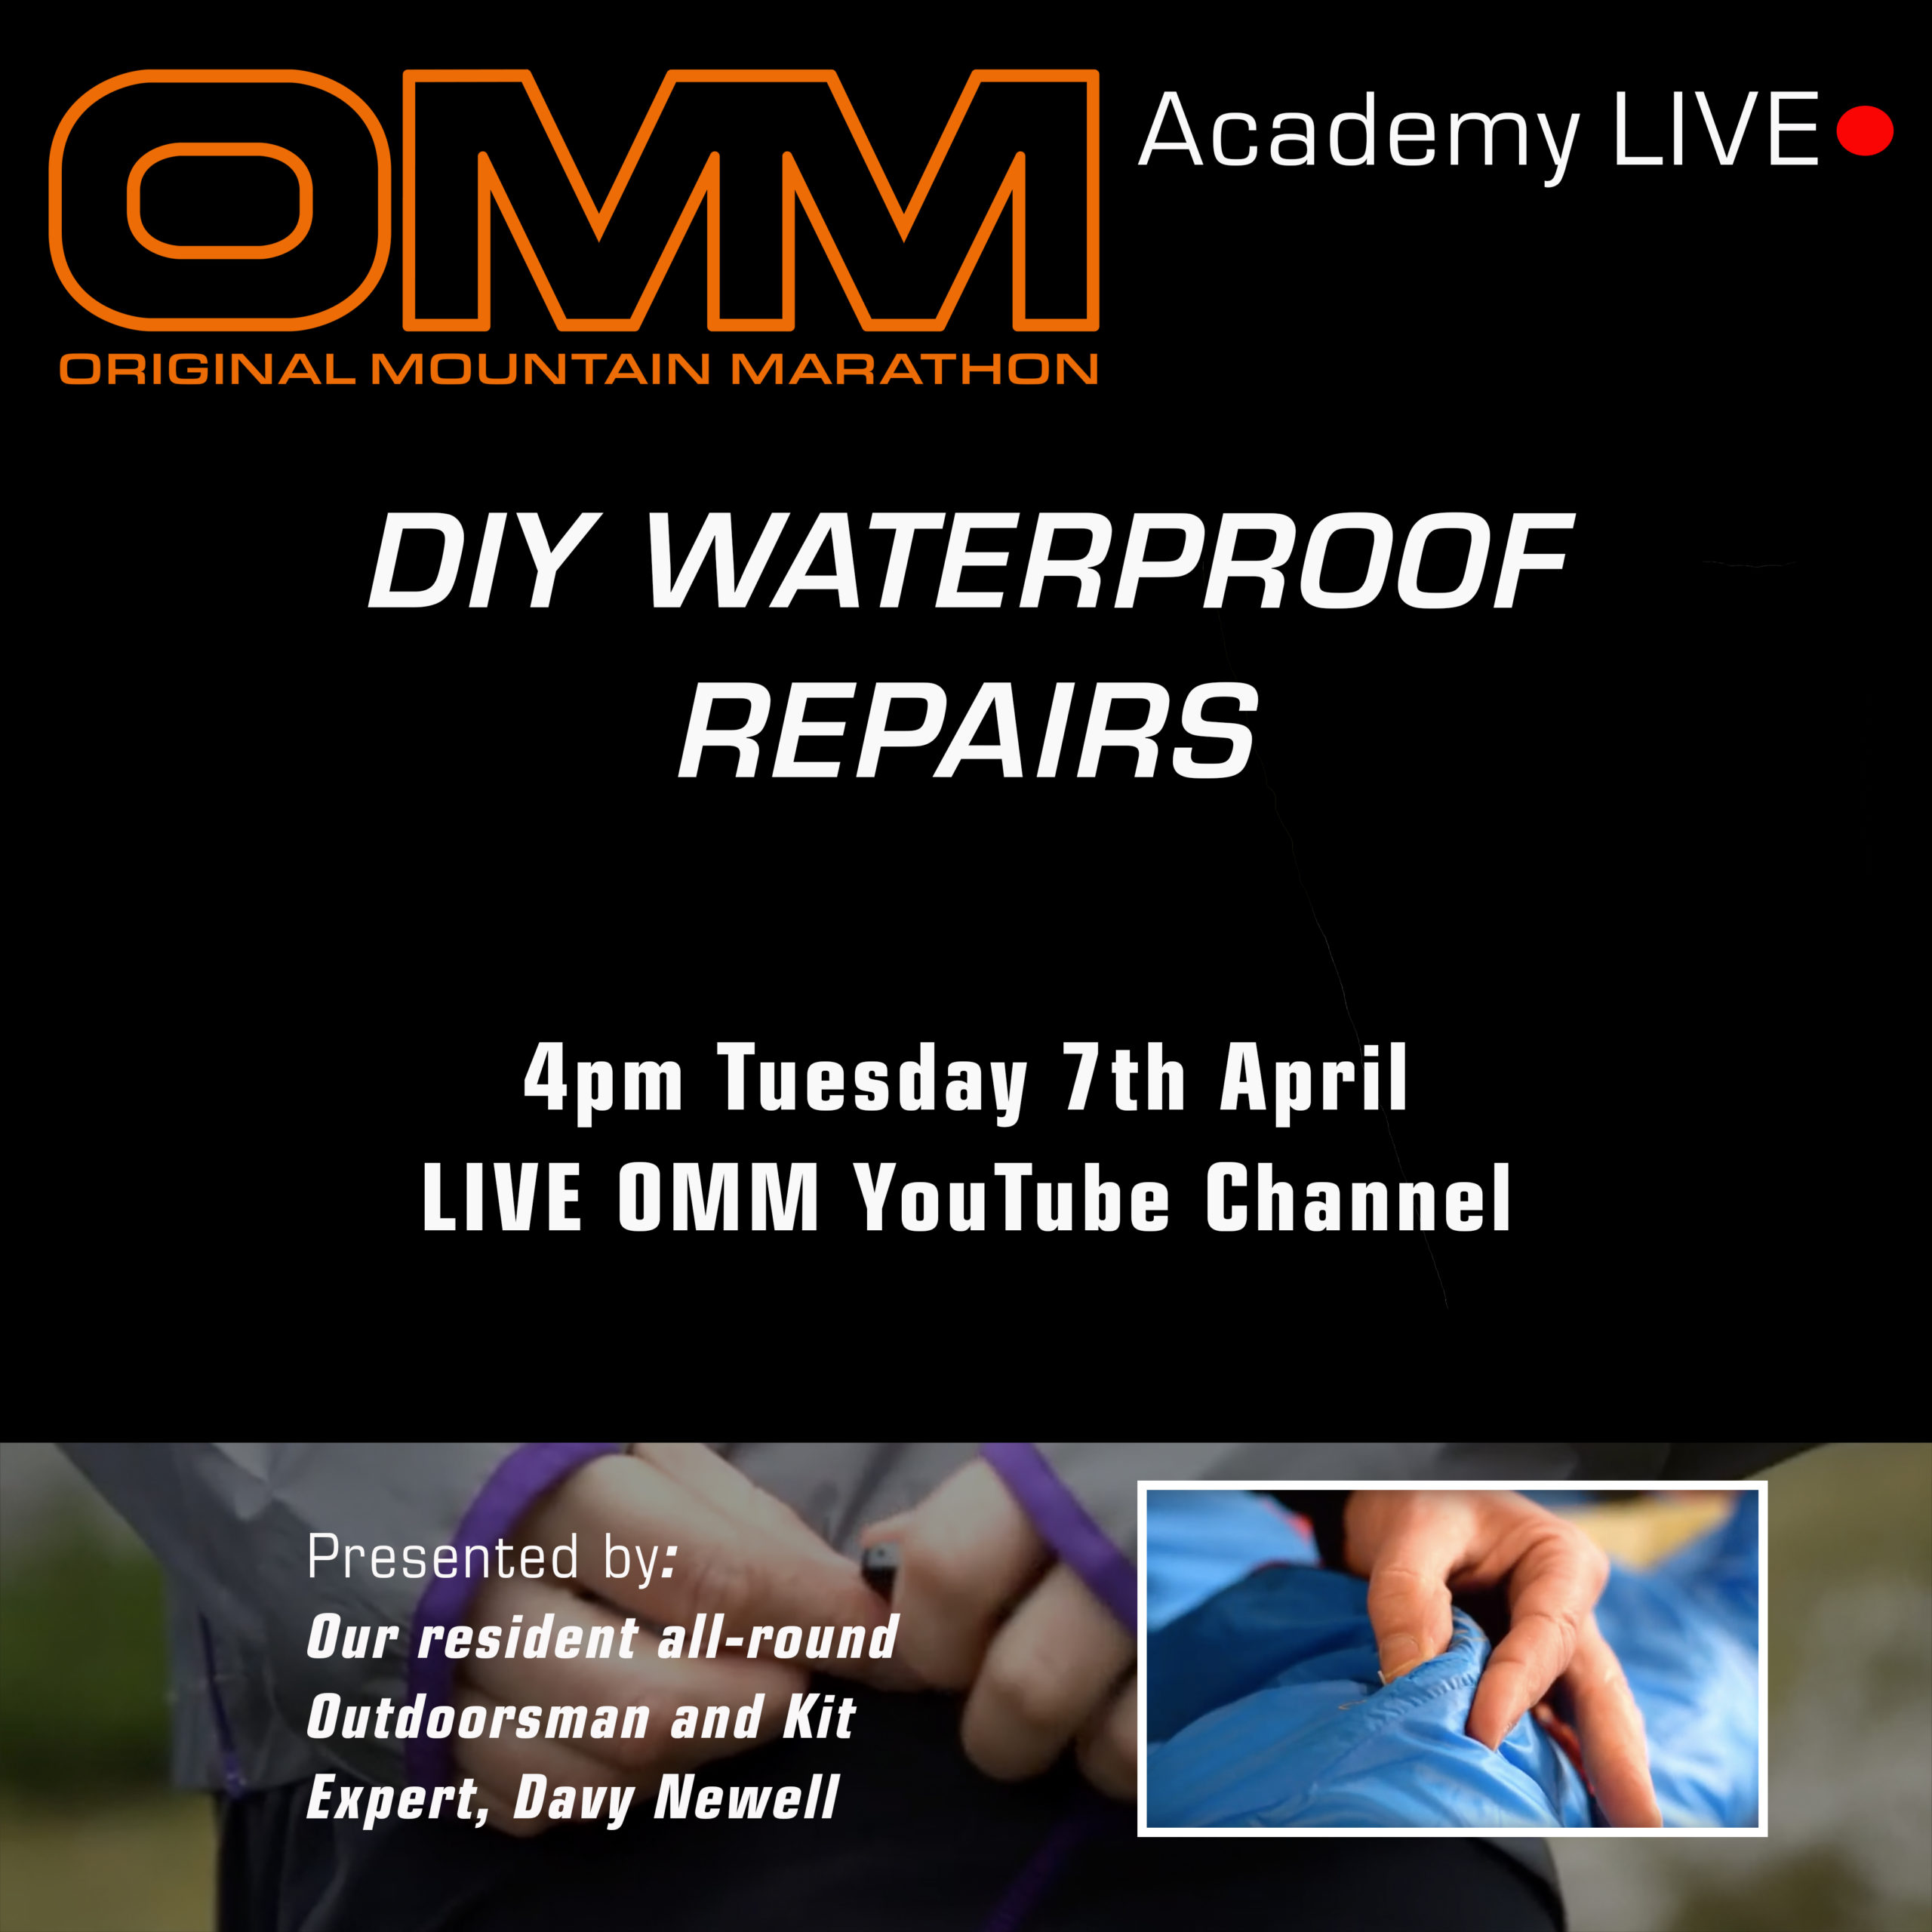 OMM Academy: DIY Waterproof Repairs